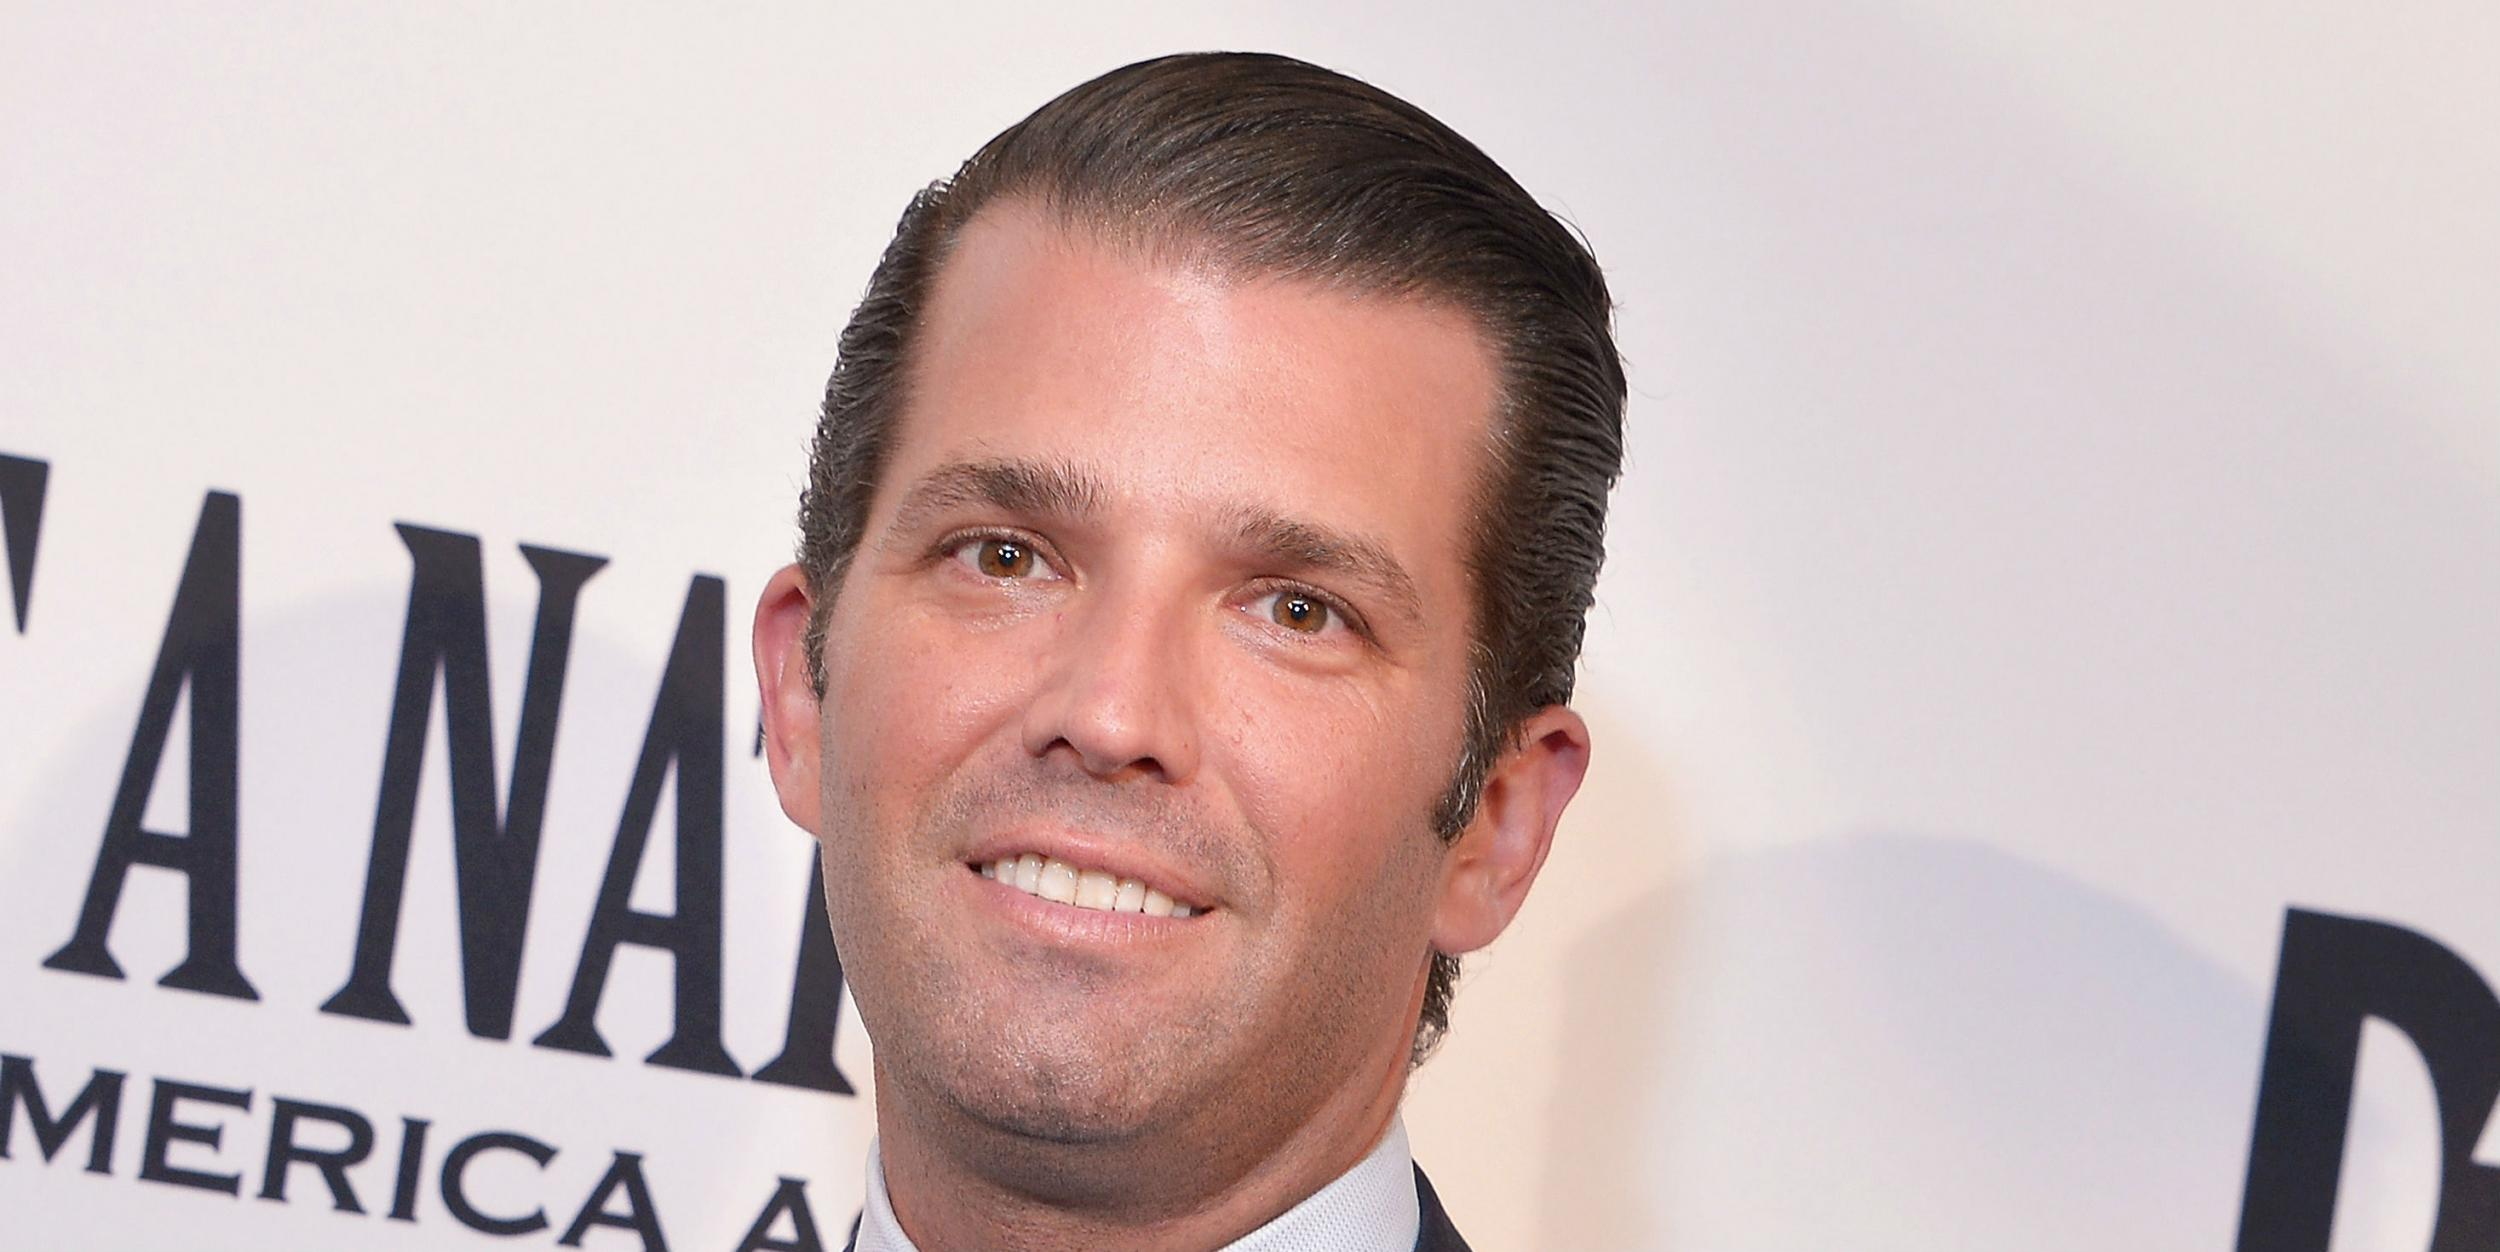 Donald Trump Jr compares the Democrats to the Nazis of the 1930s